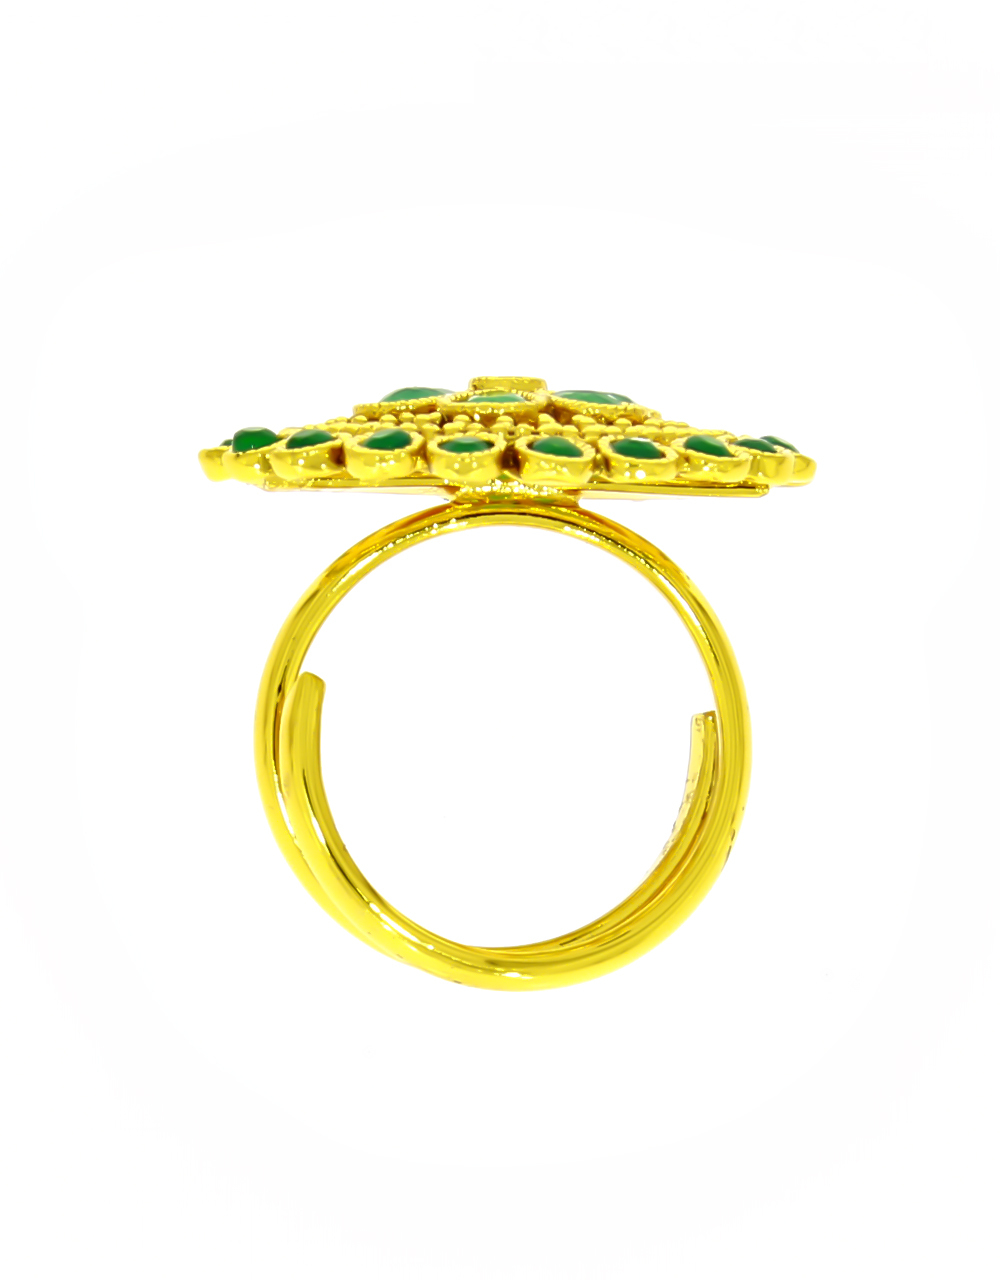 Round Shape Adorable Green Colour Finger Ring Styled with Stone for Women